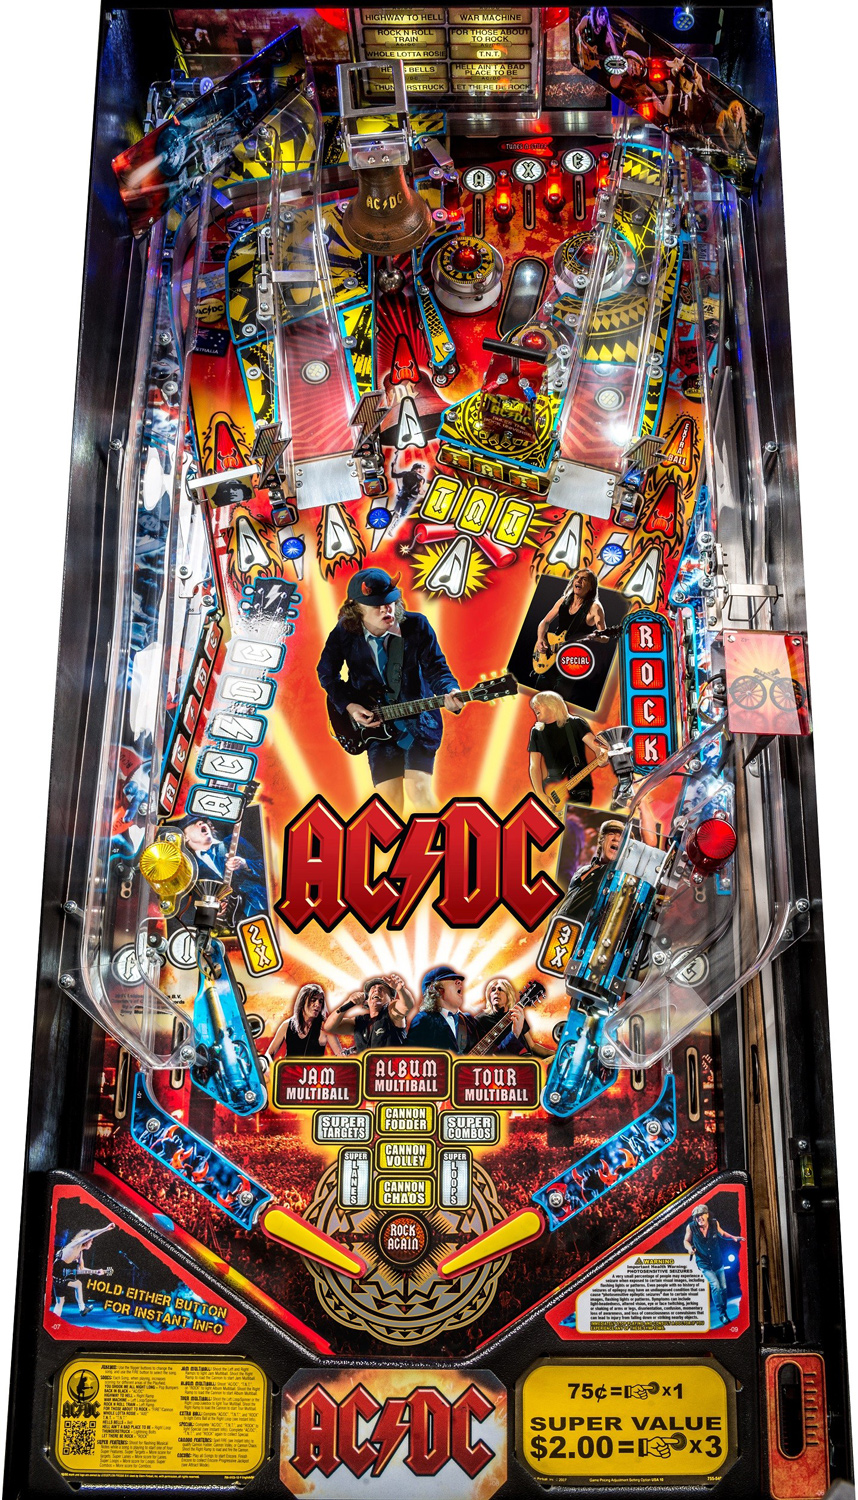 Stern Ac Dc Pro Vault Edition Pinball Machine Liberty Games